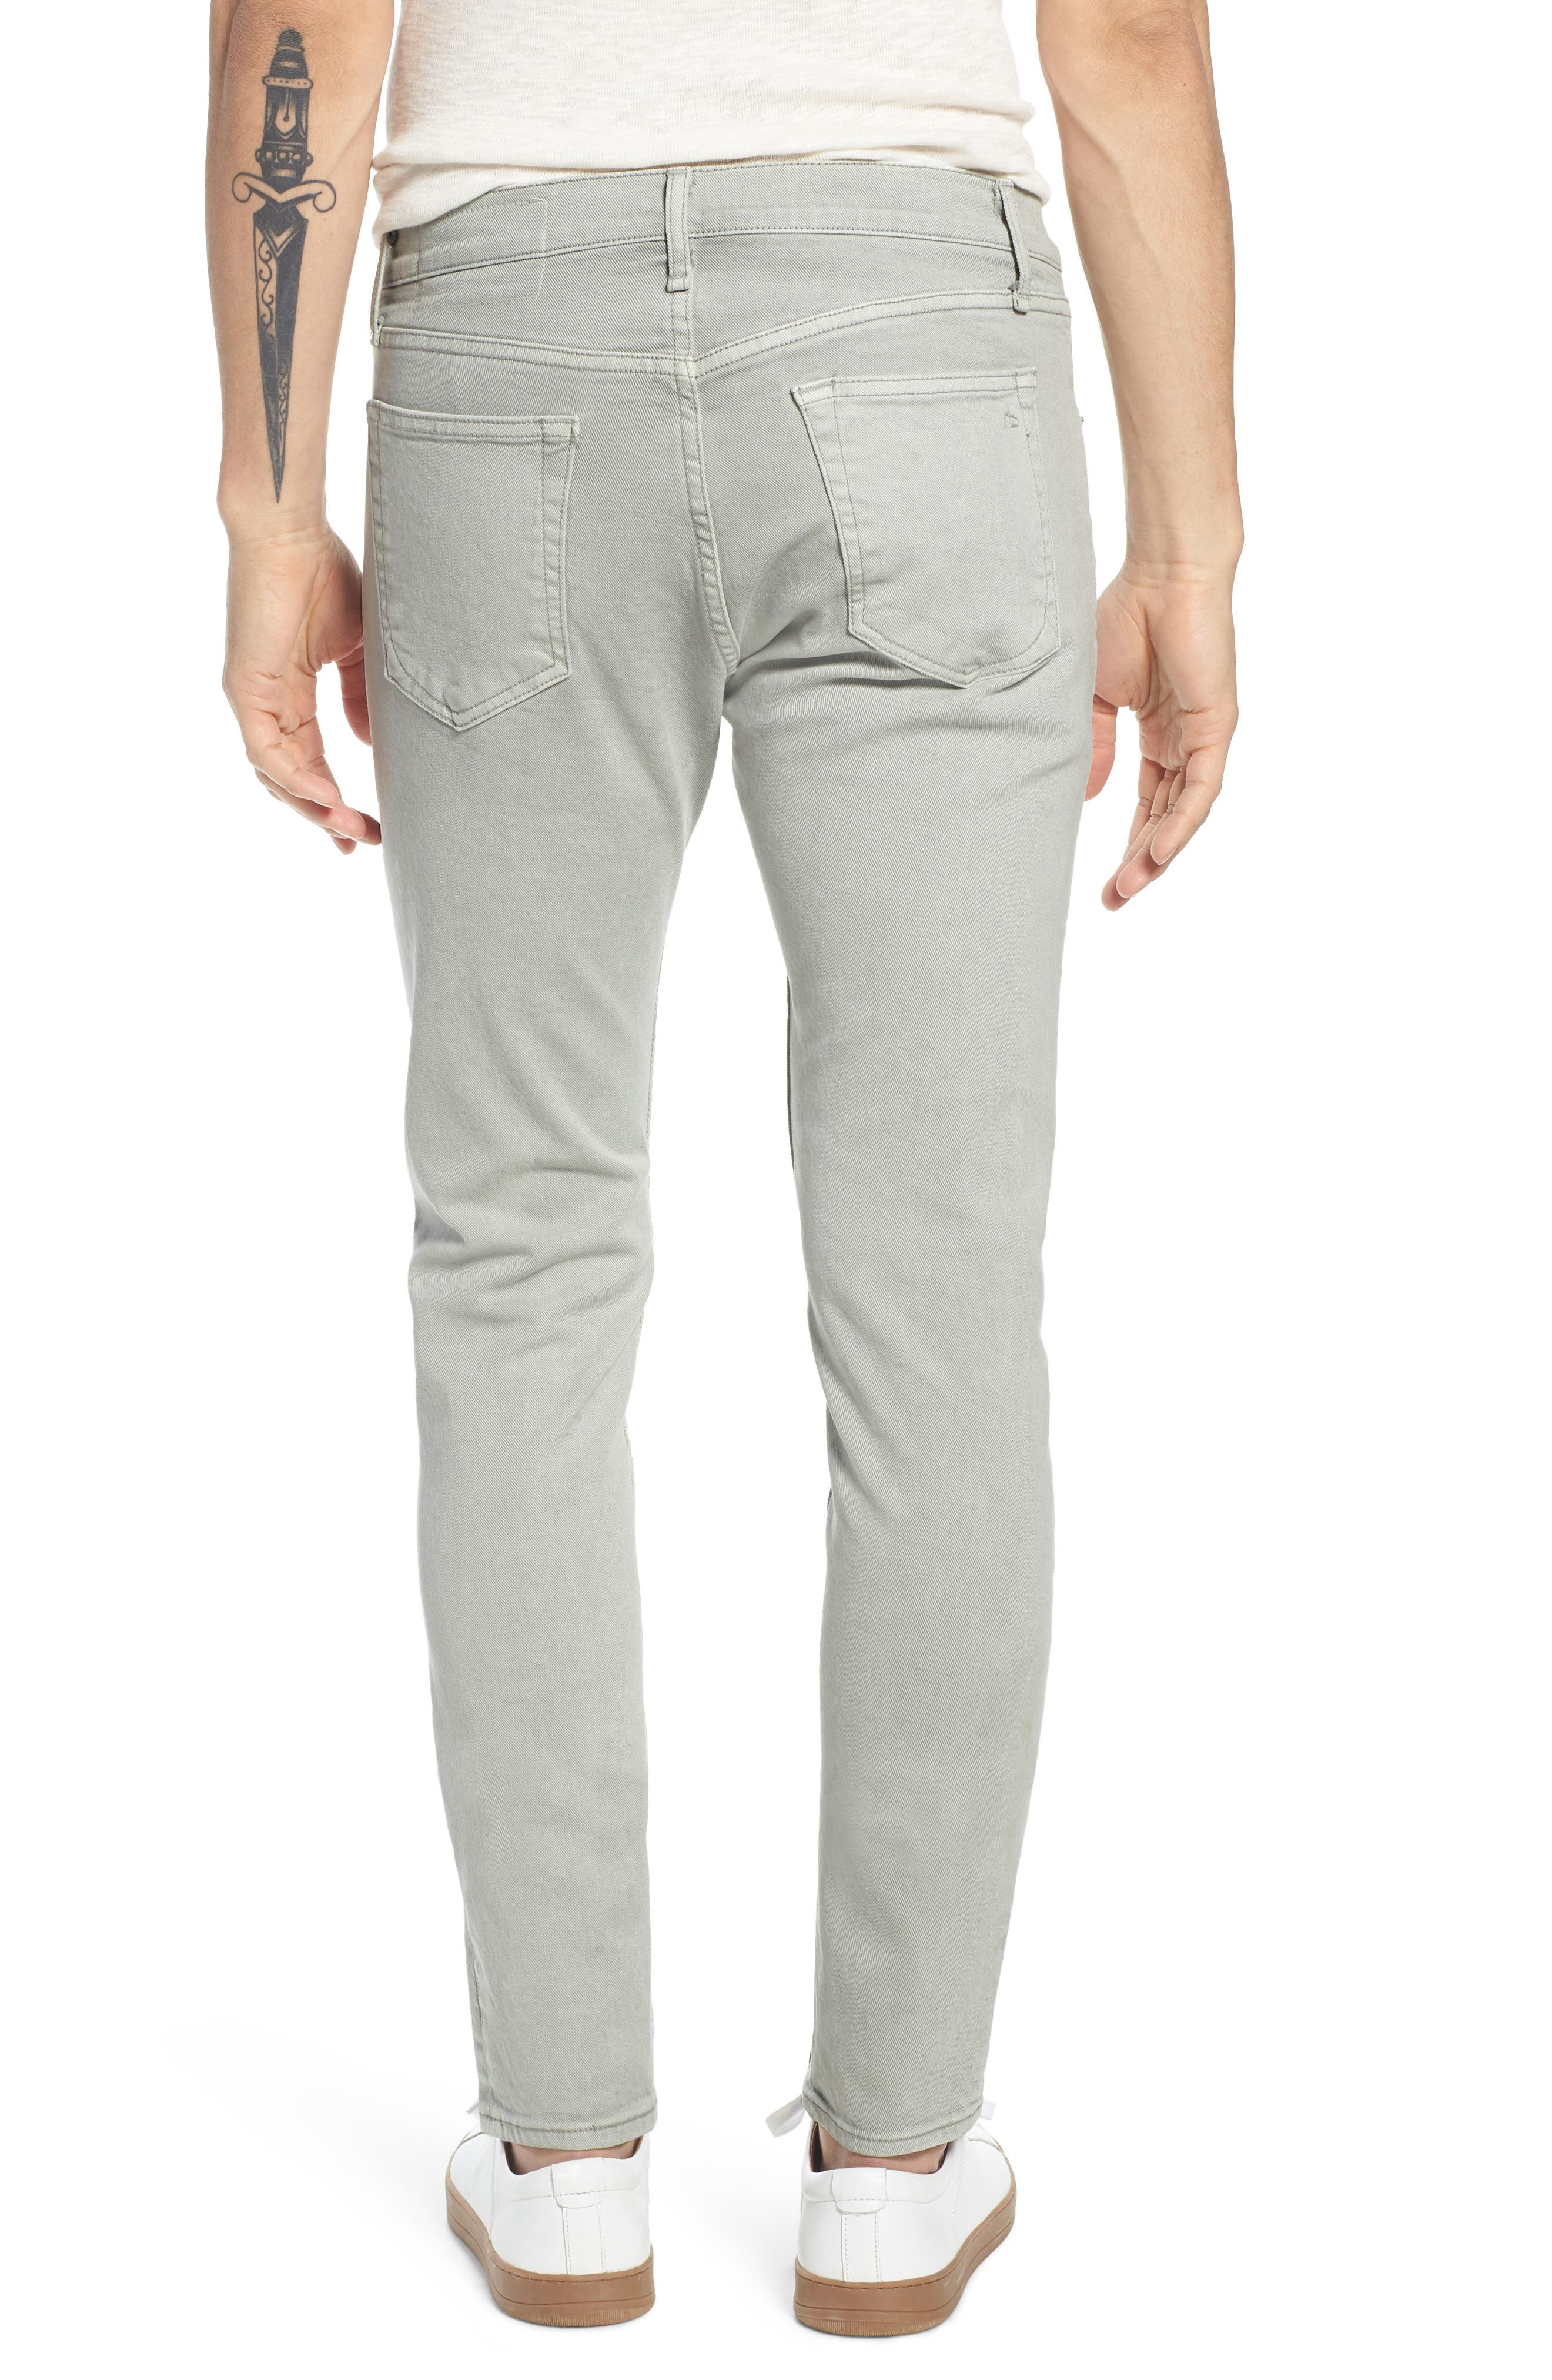 Fit 1 Skinny Fit Jeans,                             Alternate thumbnail 2, color,                             250